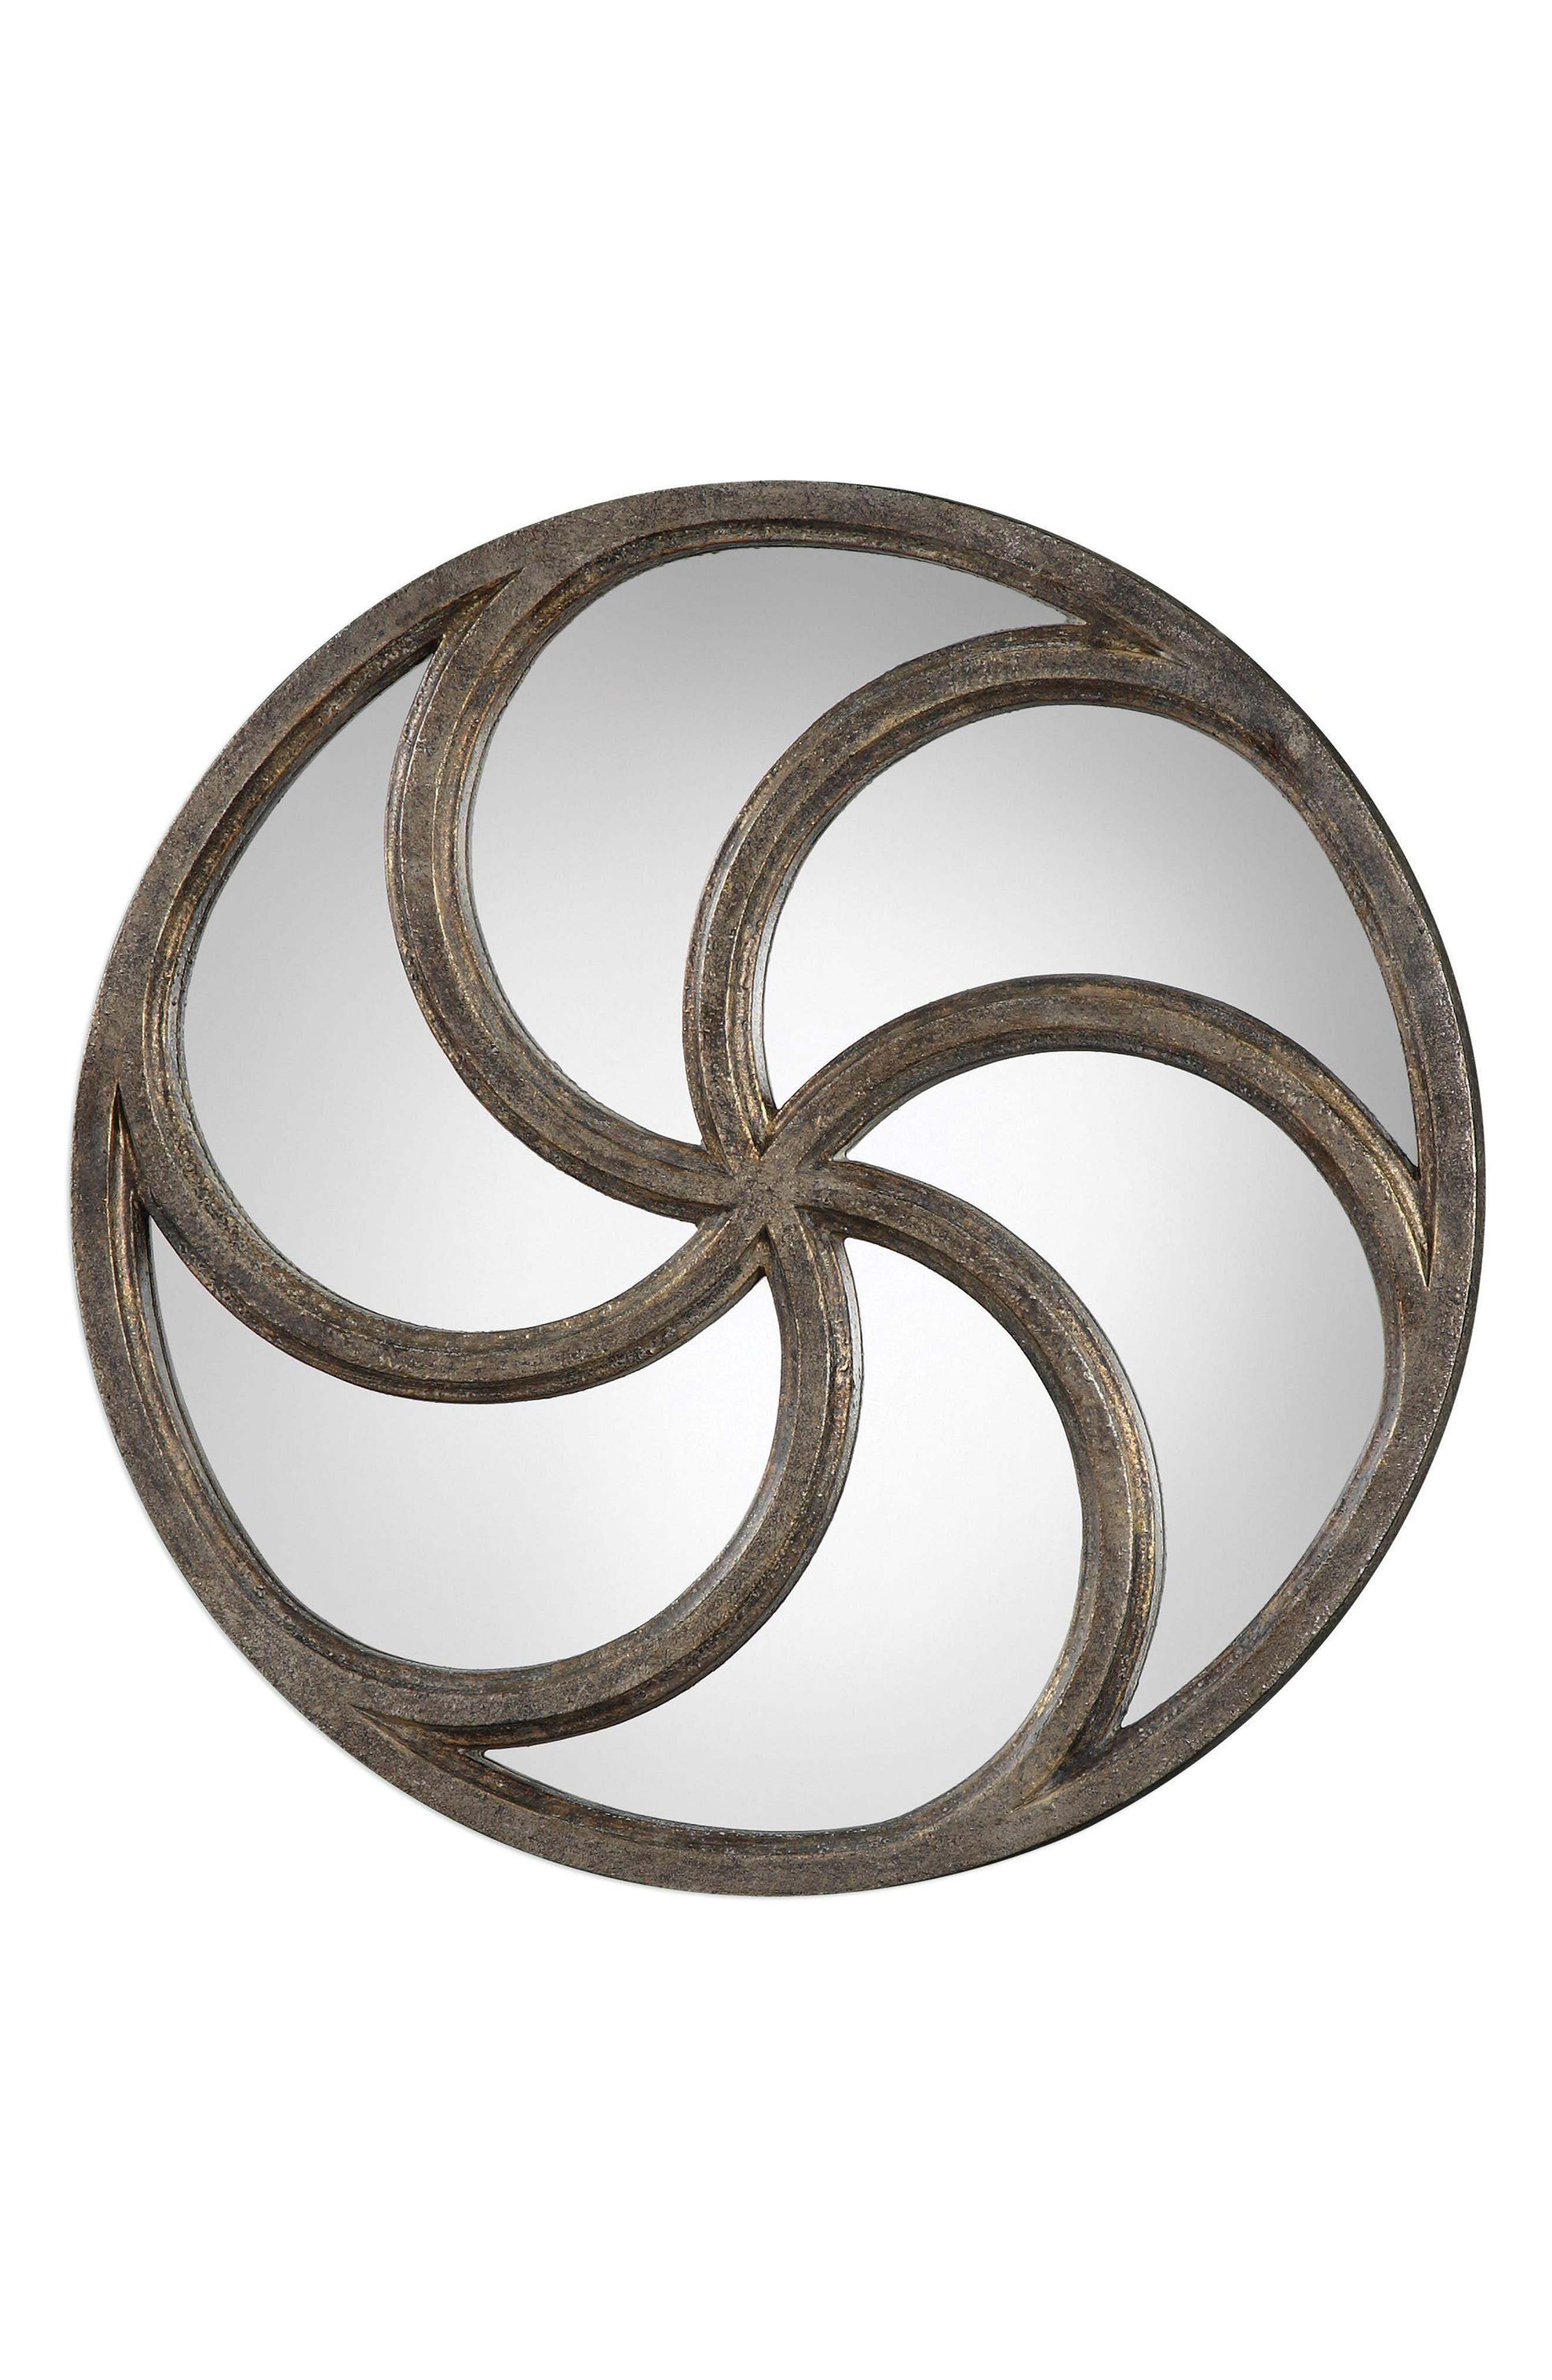 Alternate Image 1 Selected - Uttermost Spiralis Wall Mirror